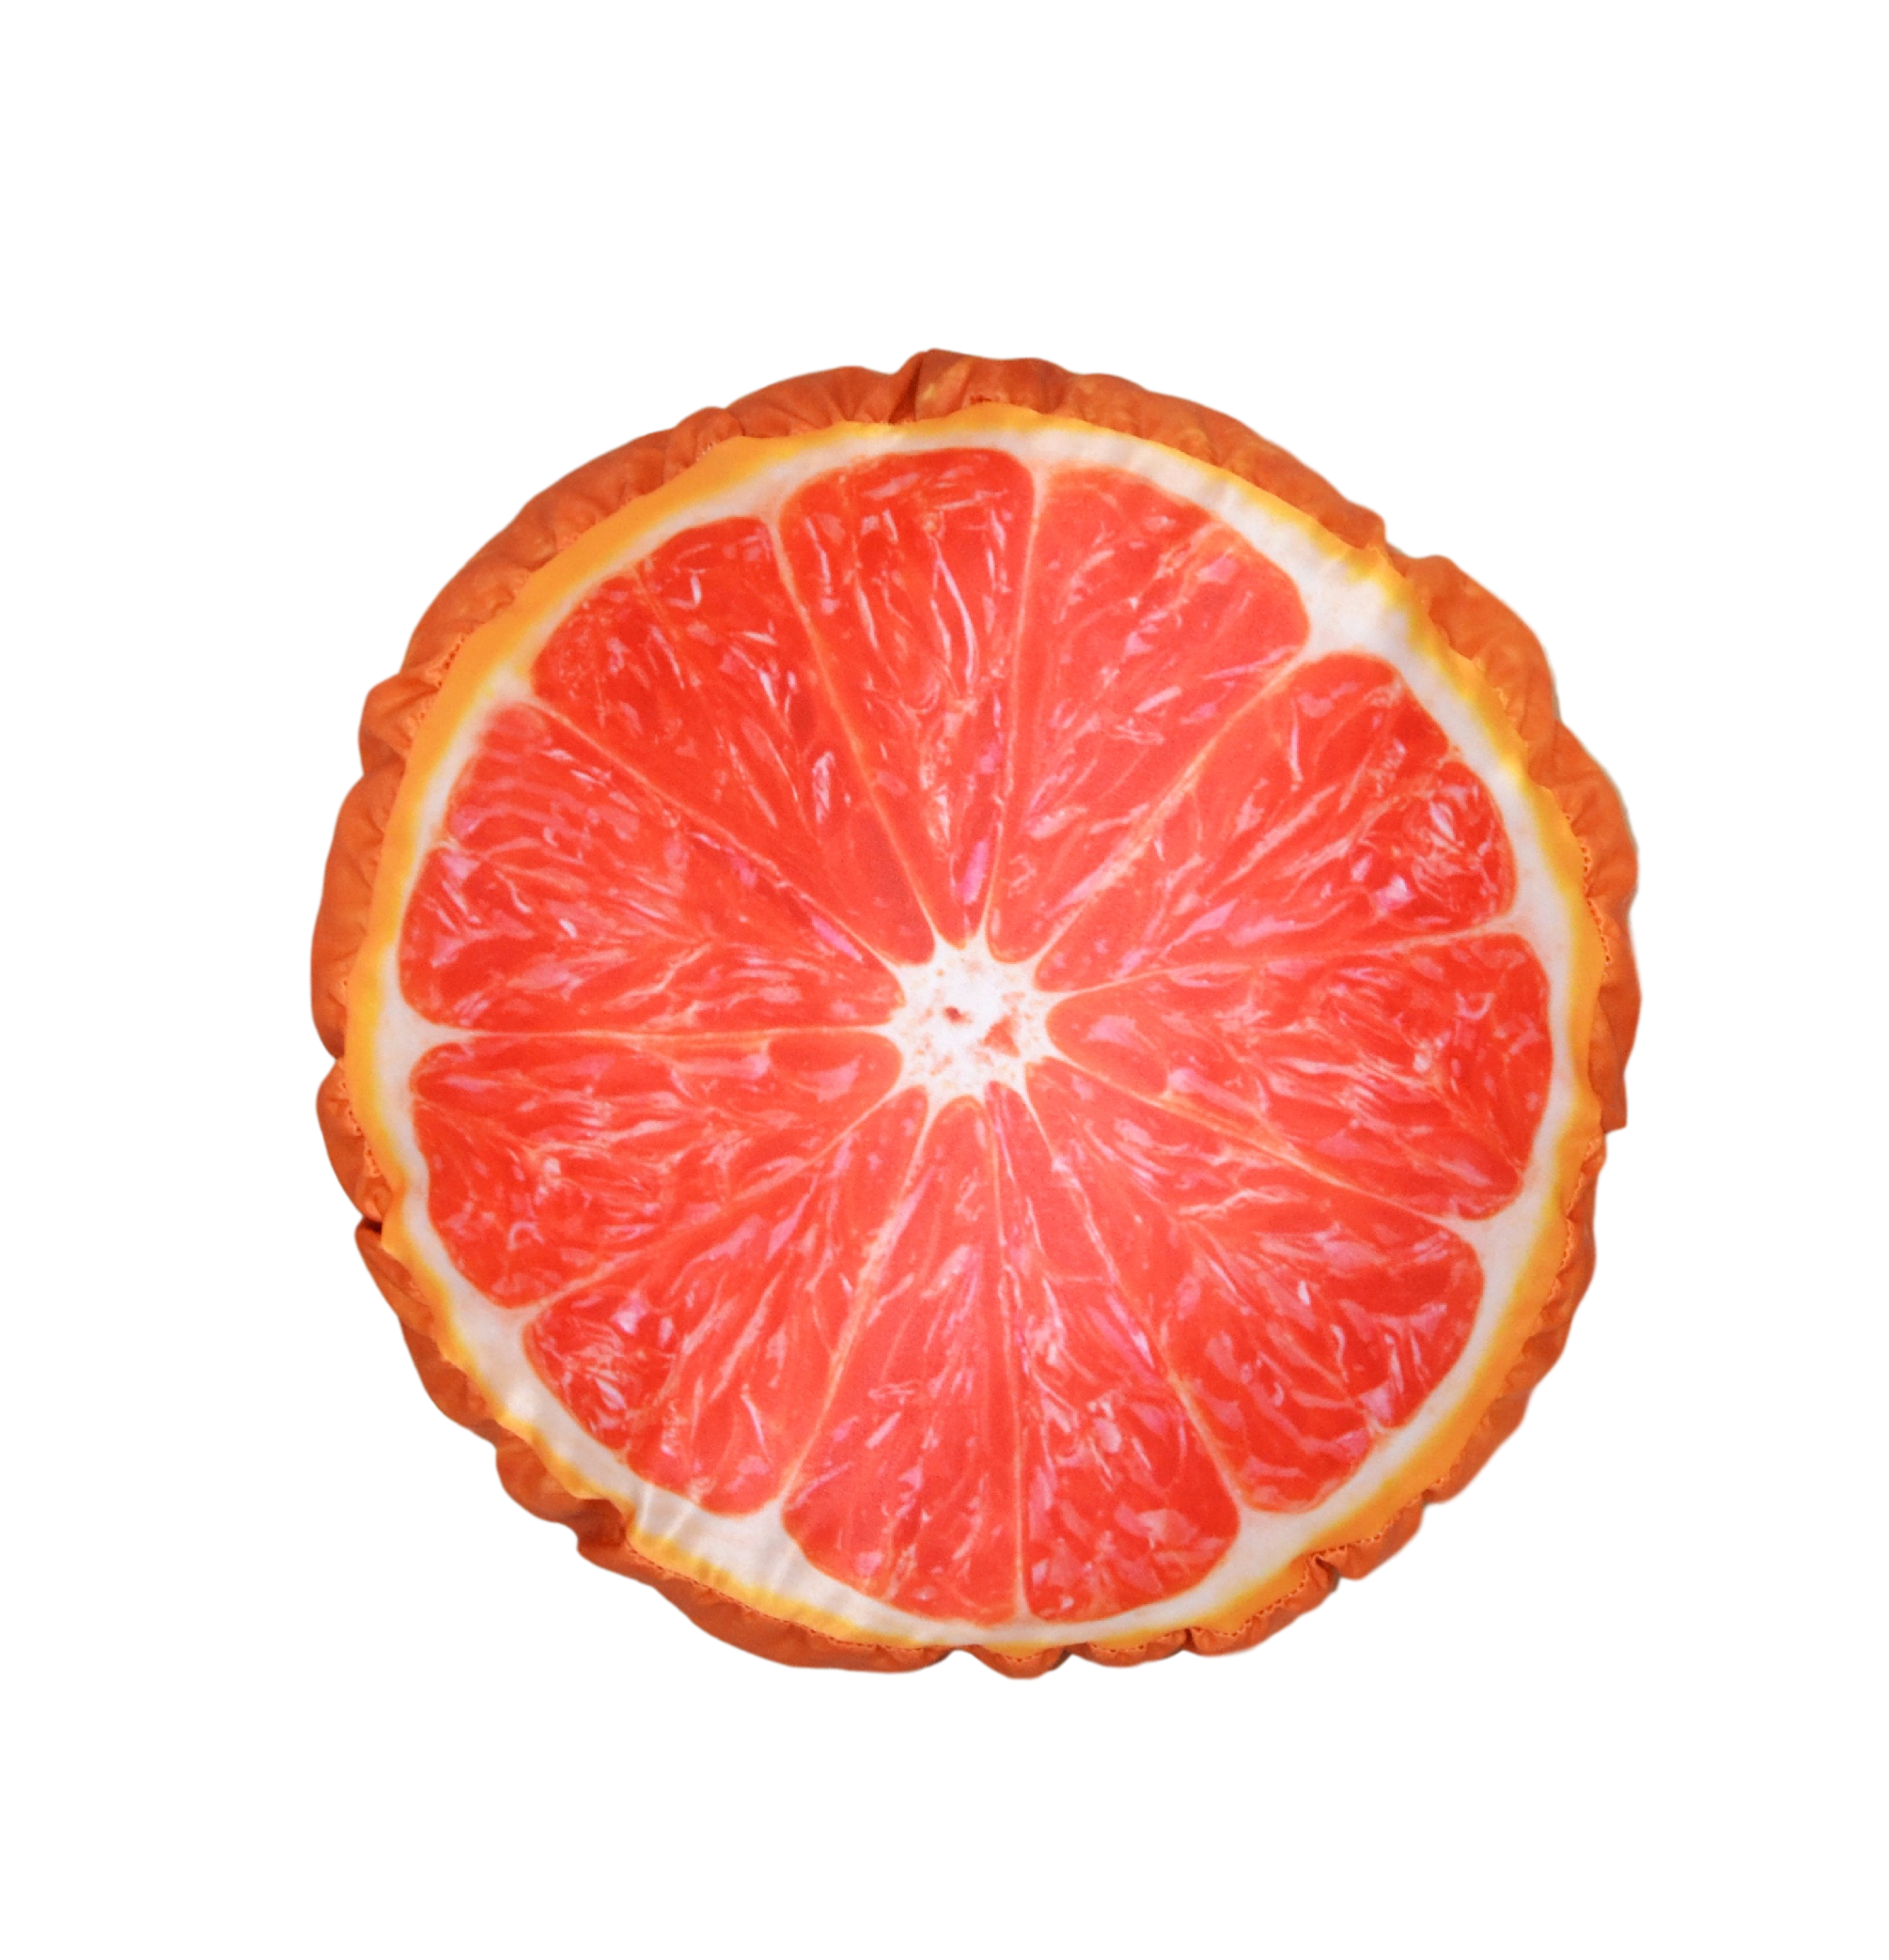 Grapefruit PNG images free download.